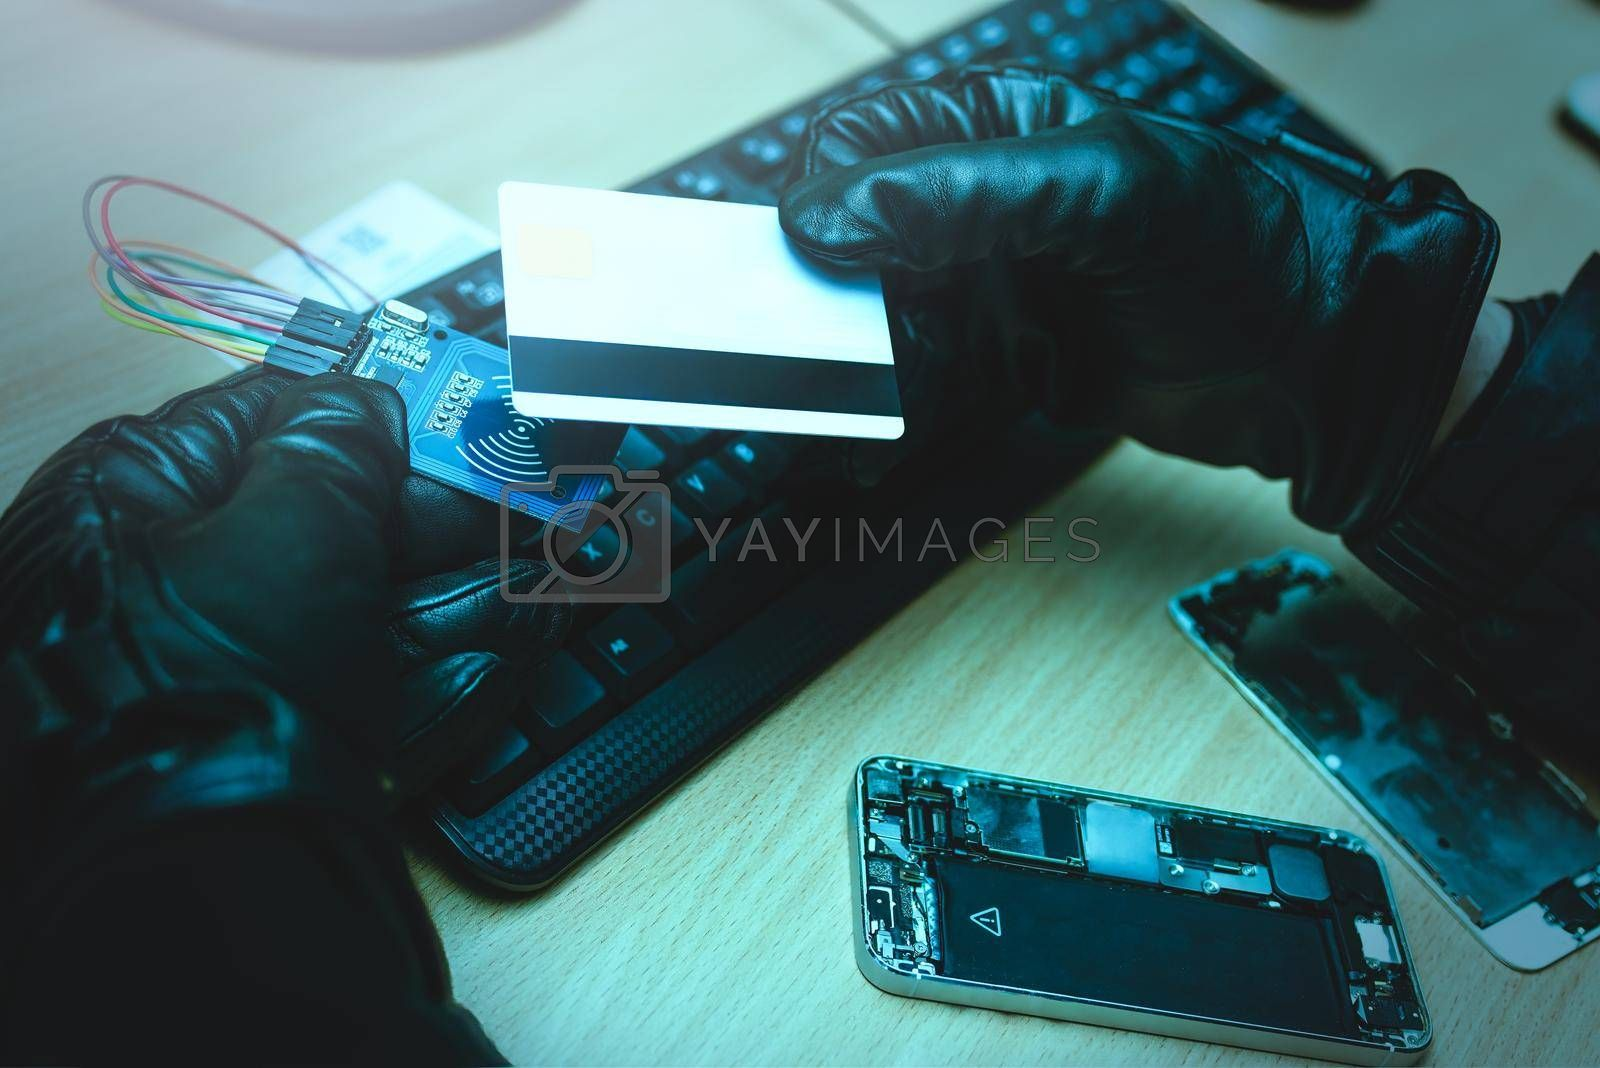 Royalty free image of Hacking concept. Hacker trying to steal mobile payment information. close up view by Nickstock